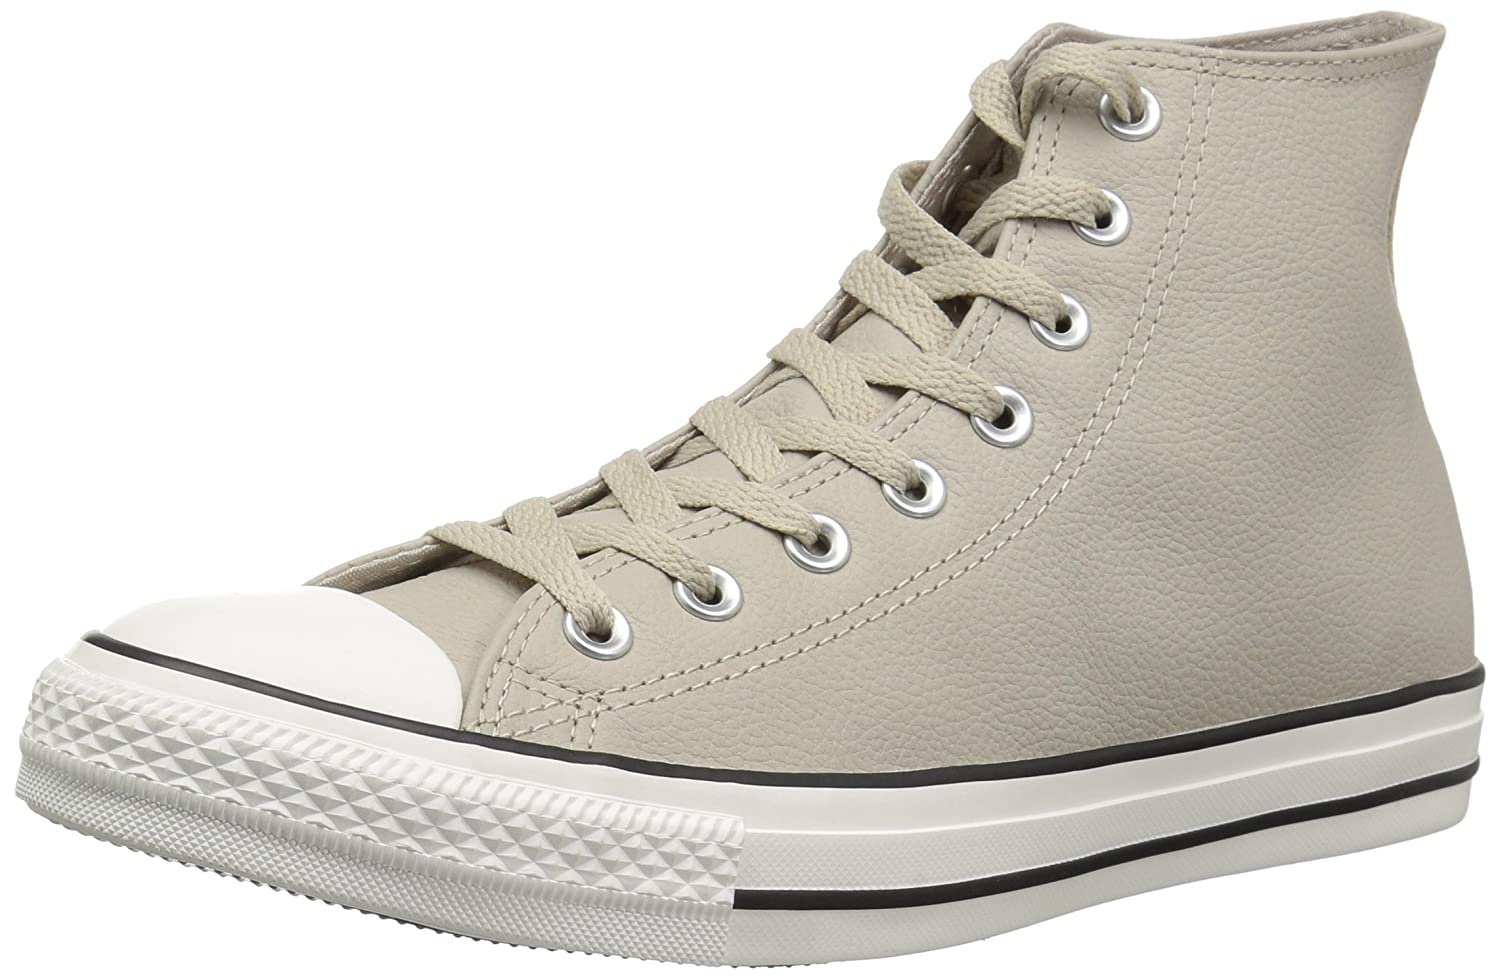 Converse Chuck Taylor All Star Tumbled Leather High Top Sneaker B07CQ9W8D5 15 M US|Papyrus/Papyrus/Egret